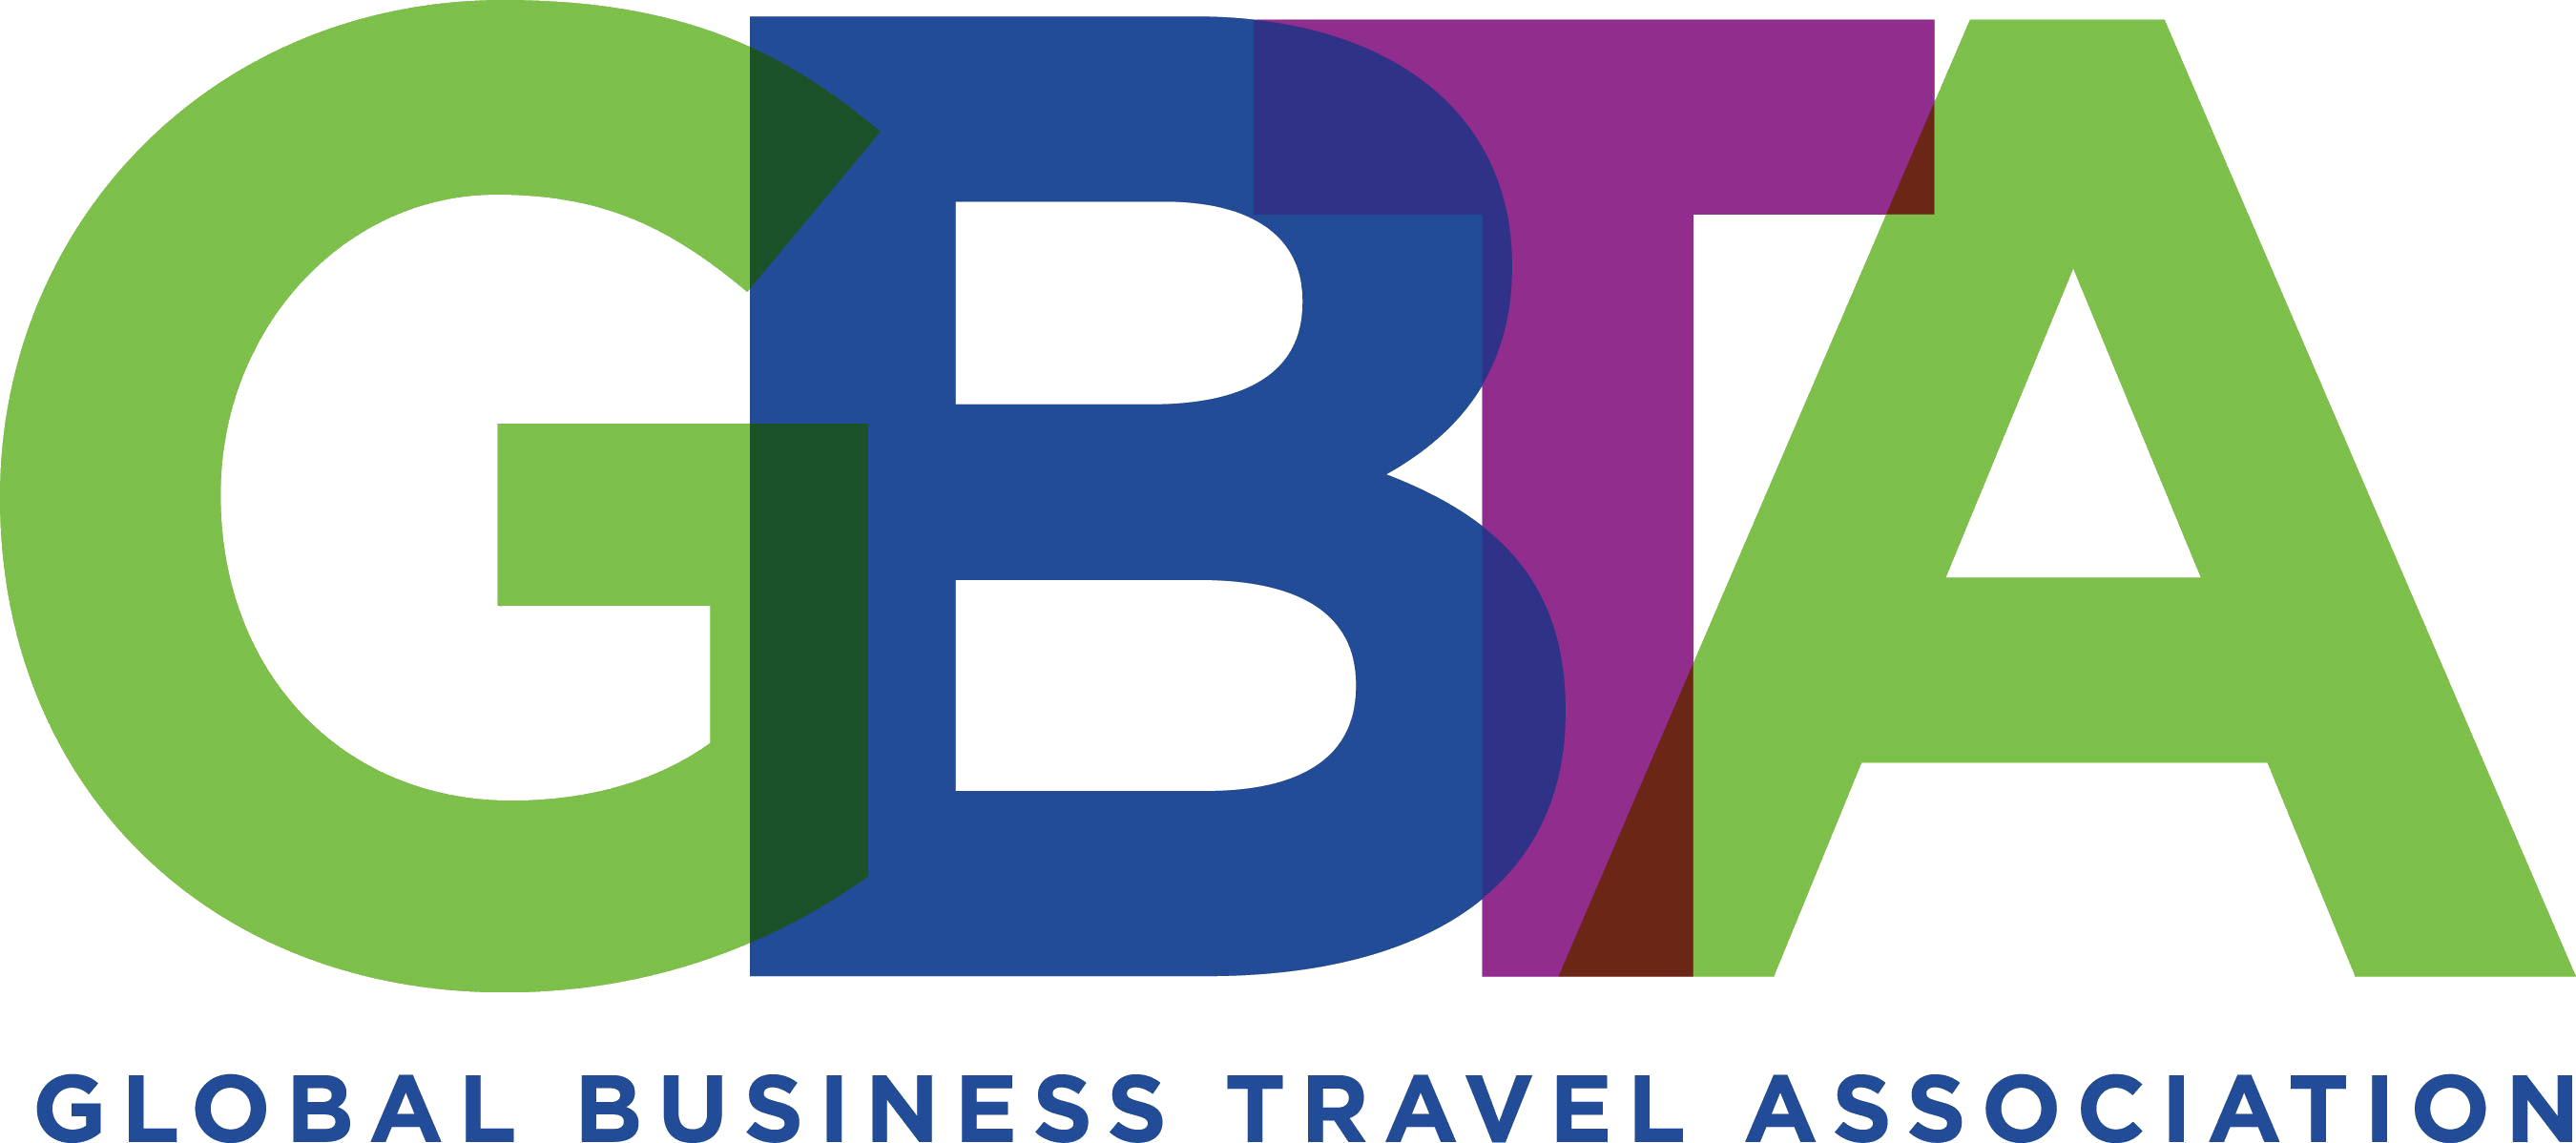 GBTA Global Business Travel Association